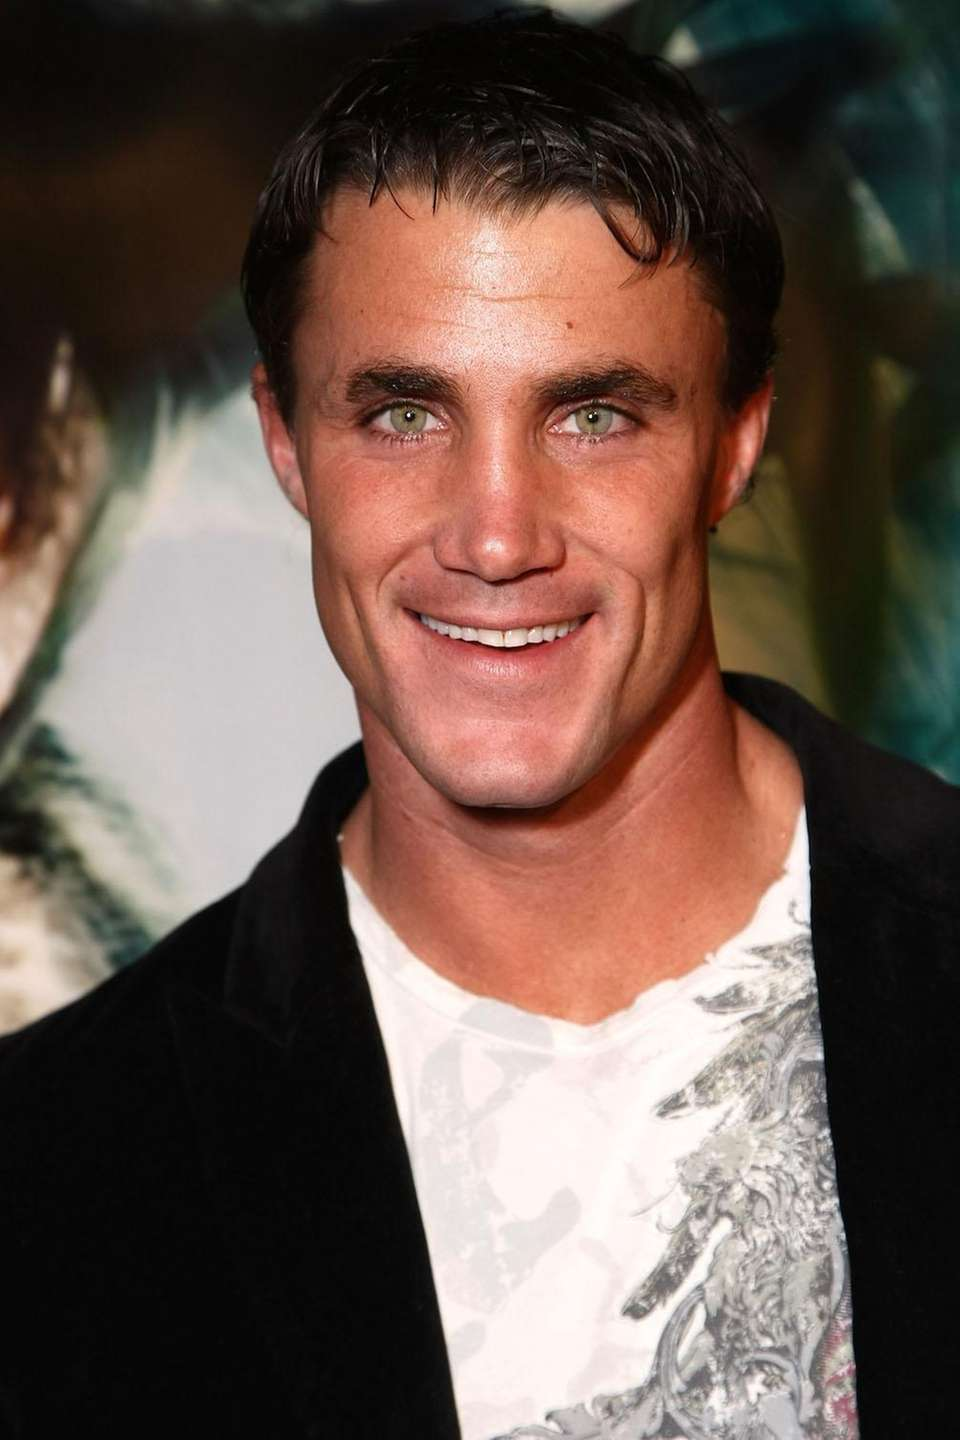 Greg Plitt (Nov. 3, 1977 -- Jan. 17,